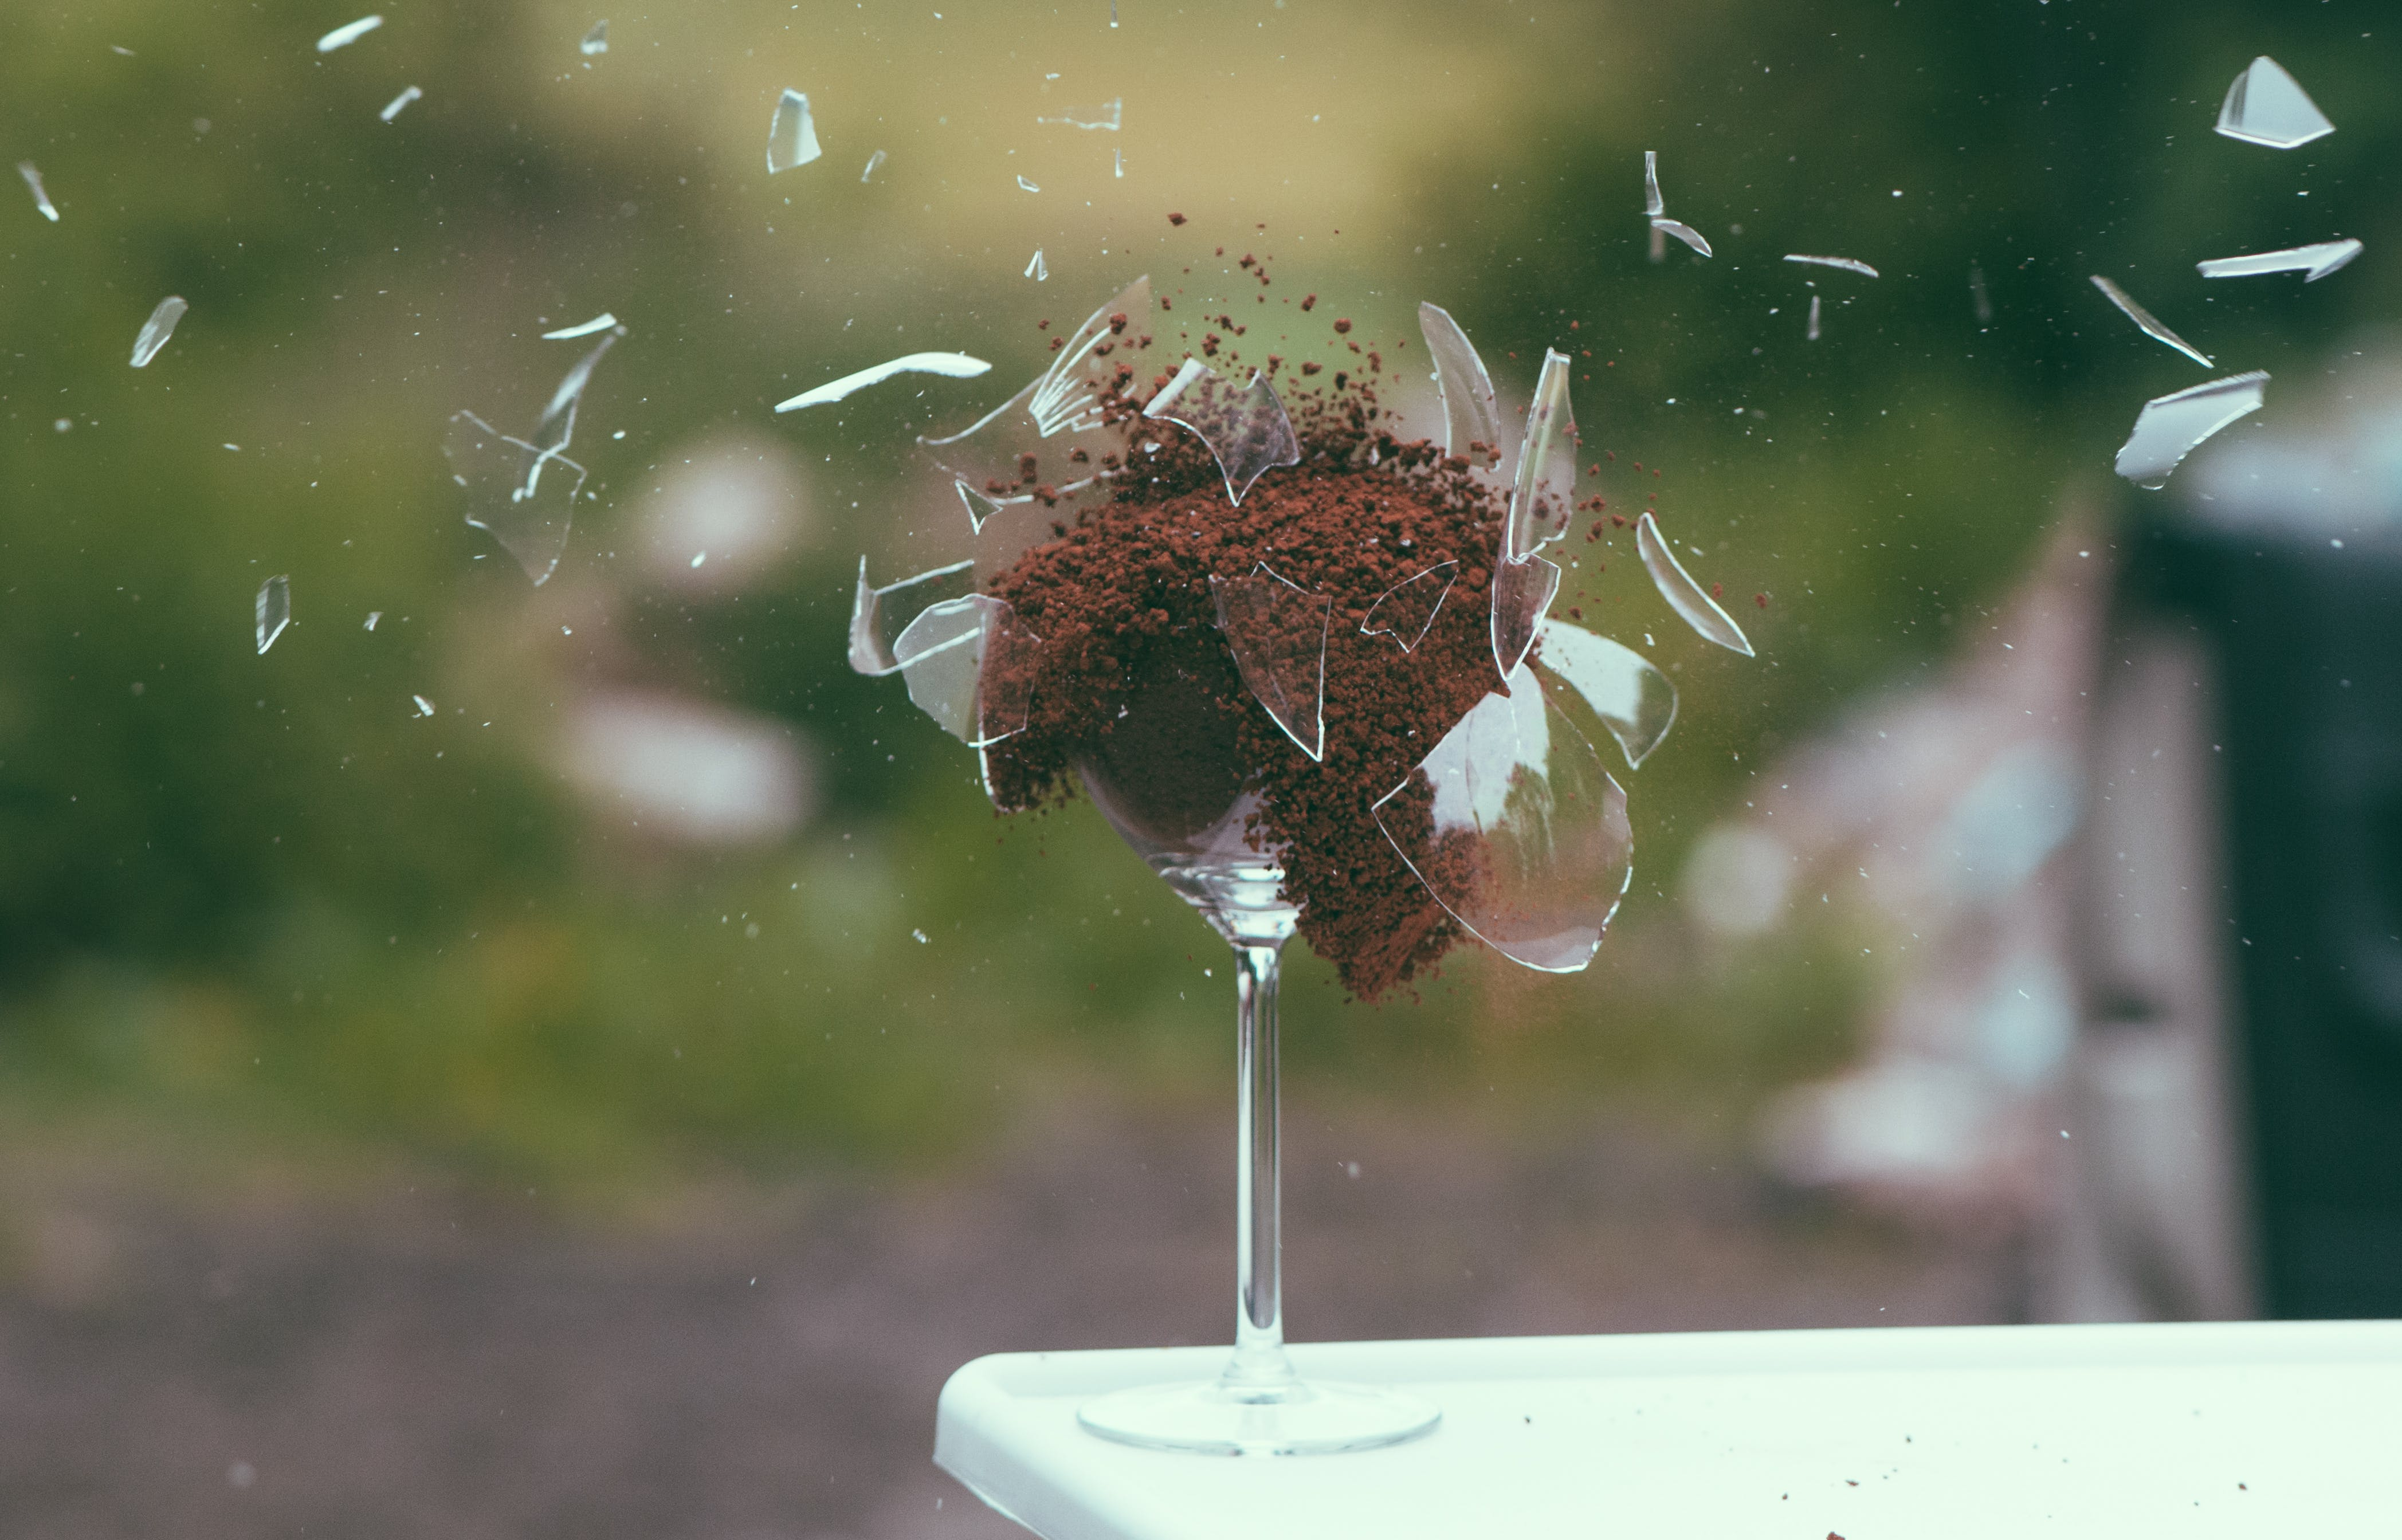 Selective Focus Photography of Broken Wine Glass With Brown Powder